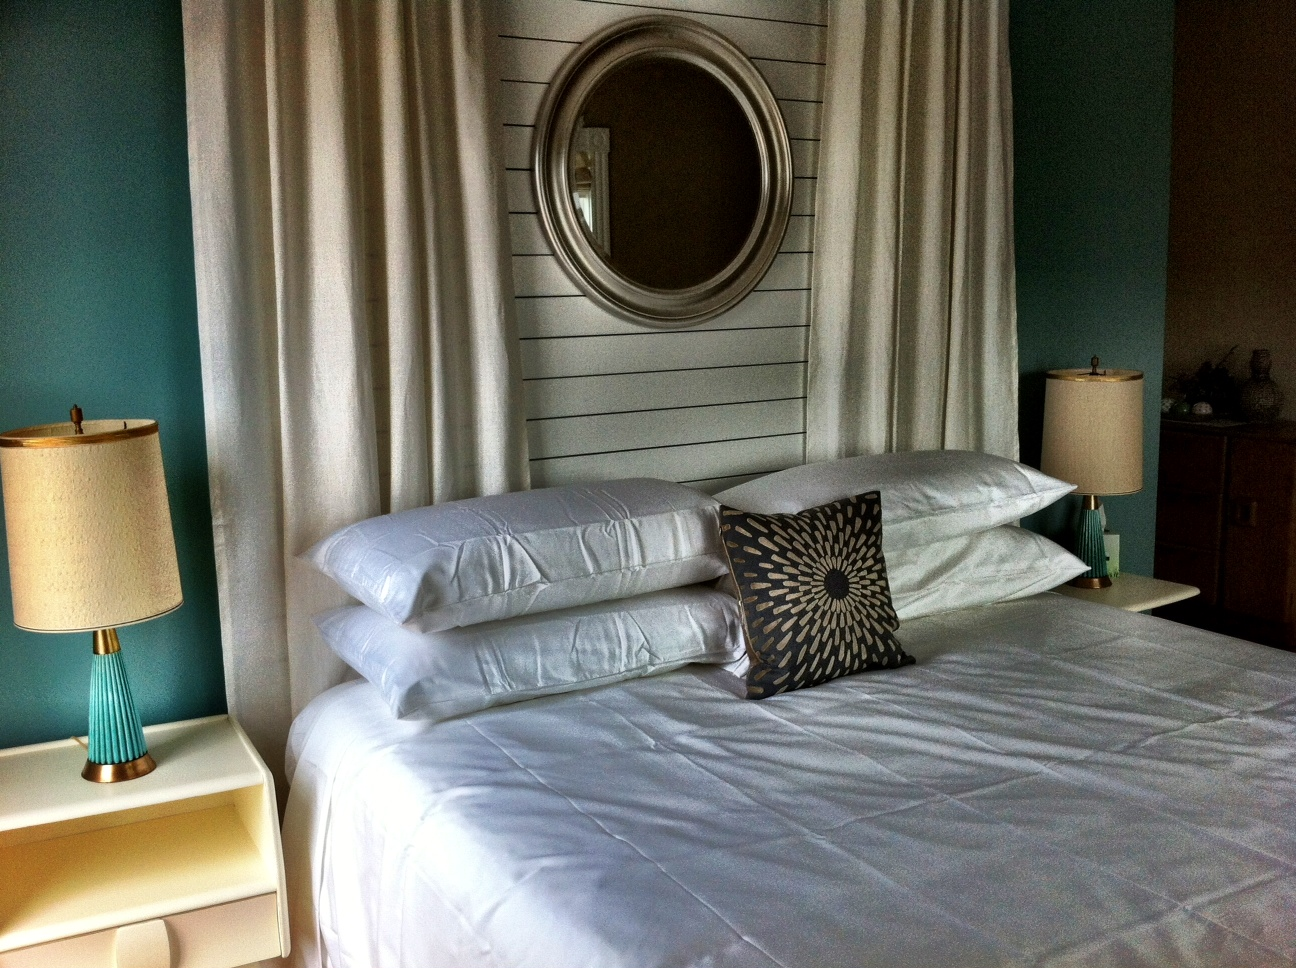 Woods Hole Inn's honeymoon suite.